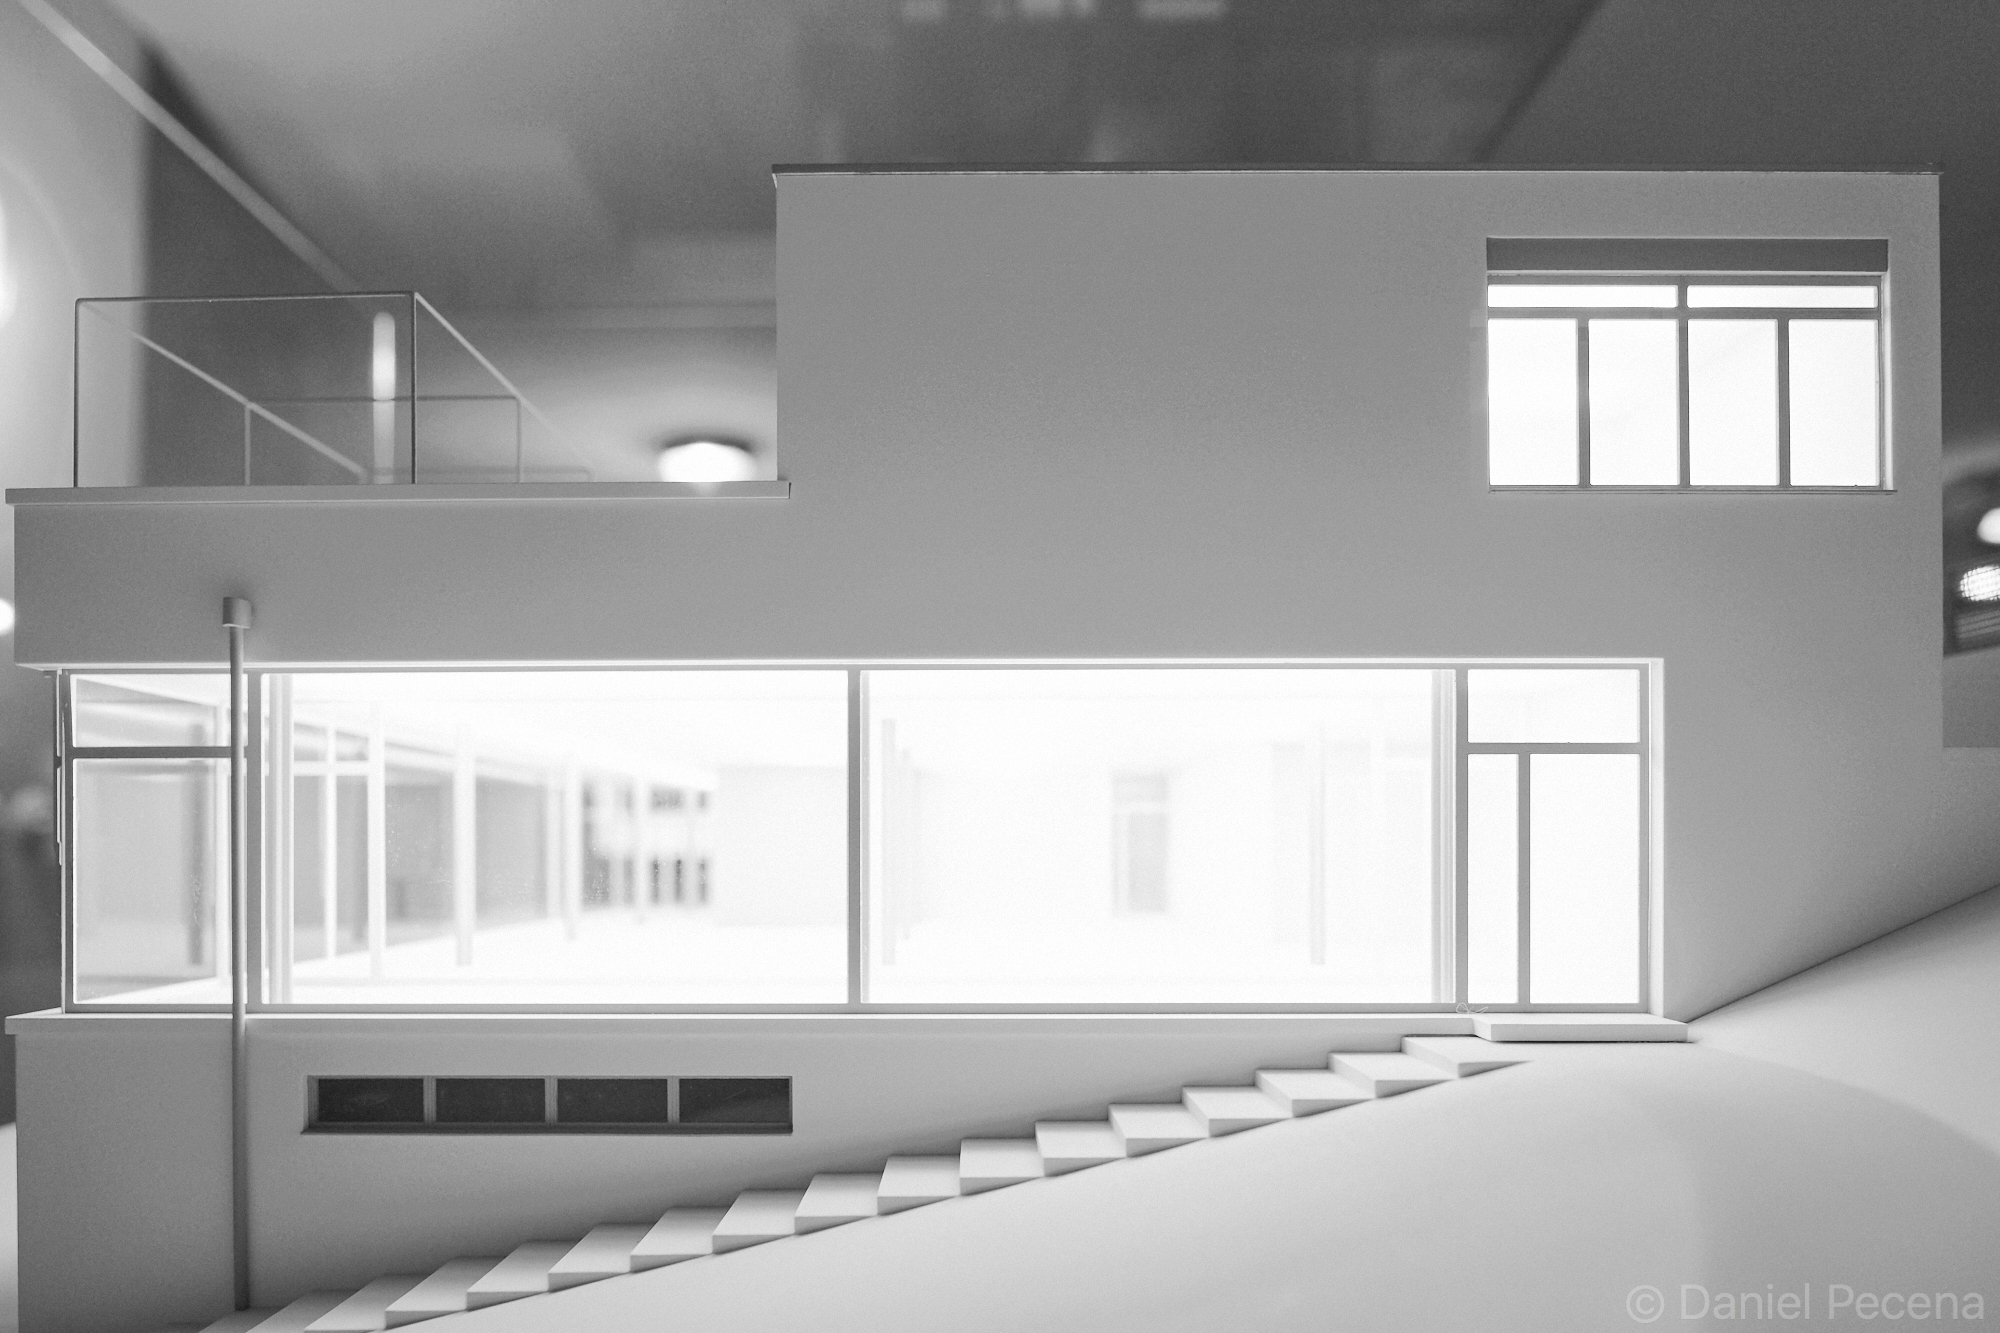 2_Villa Tugendhat model_IMG_1245.jpg